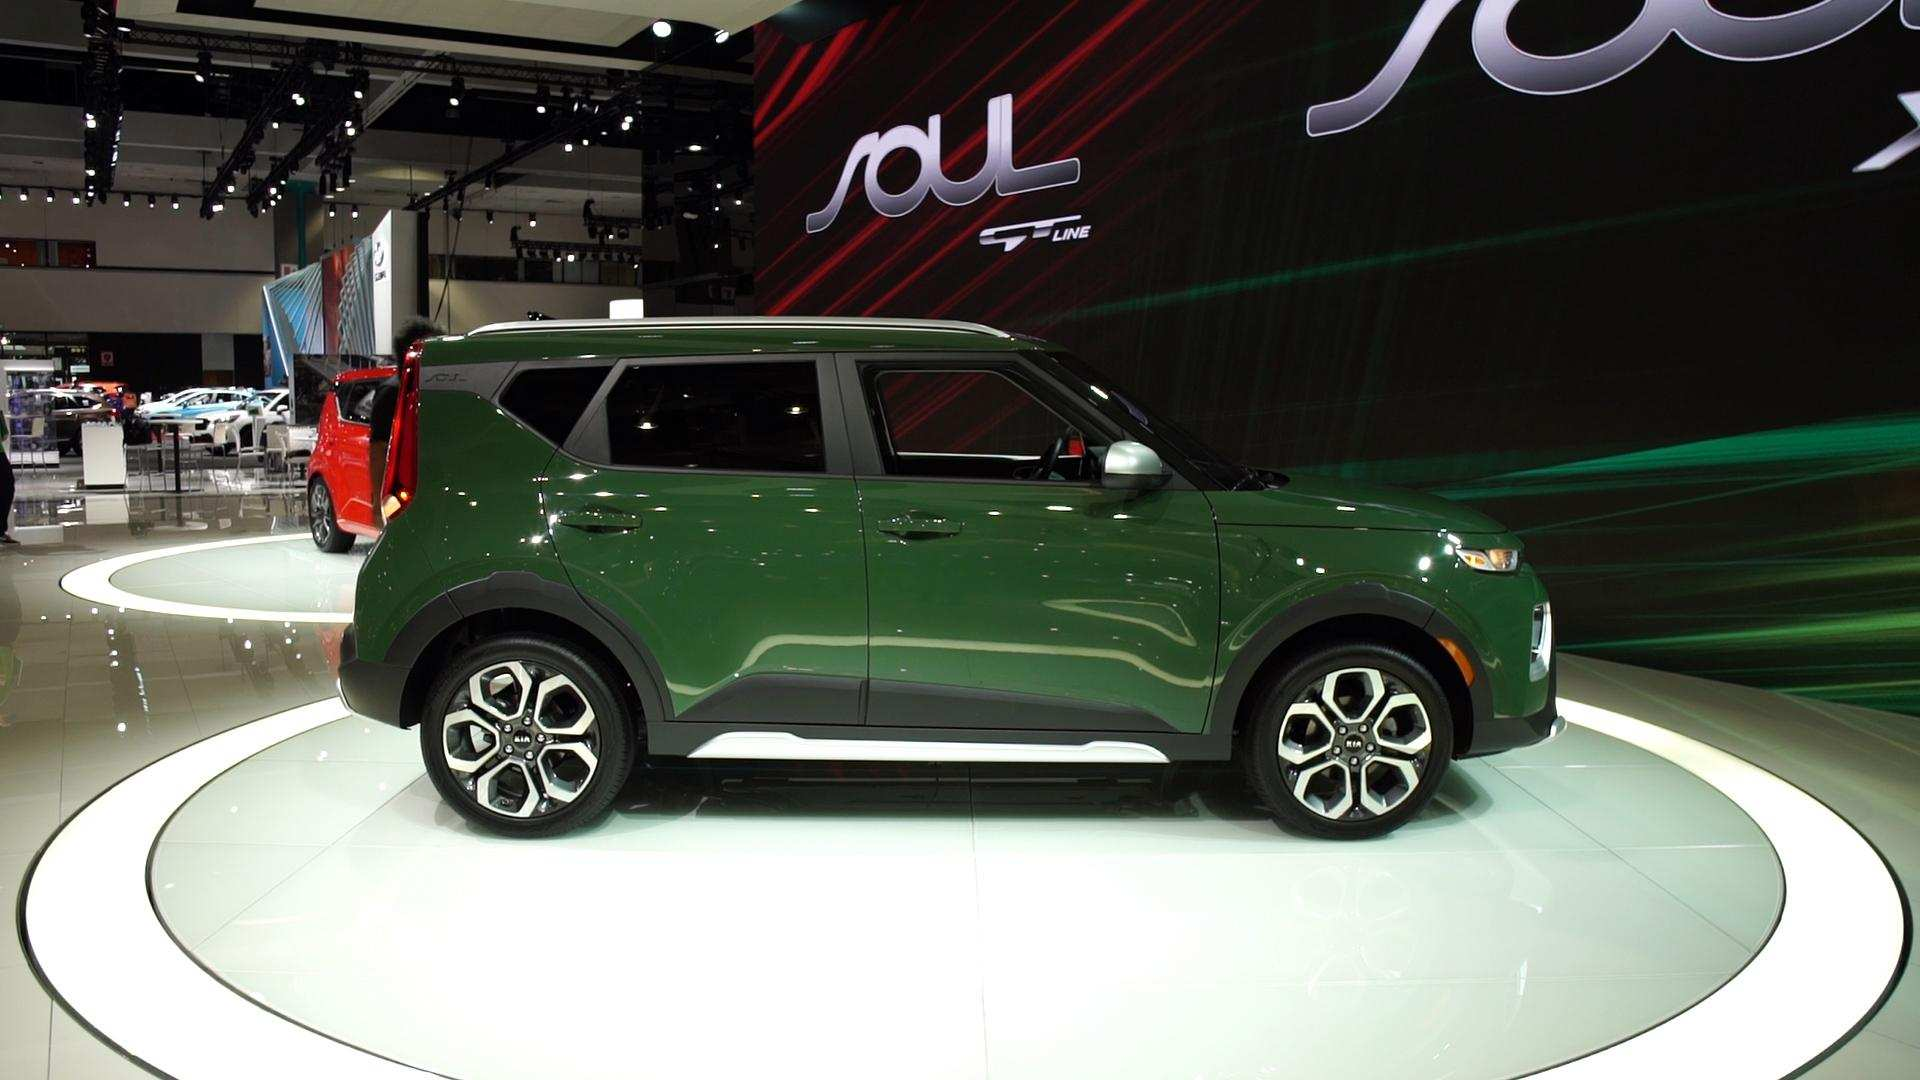 27 A 2020 All Kia Soul Awd Performance And New Engine